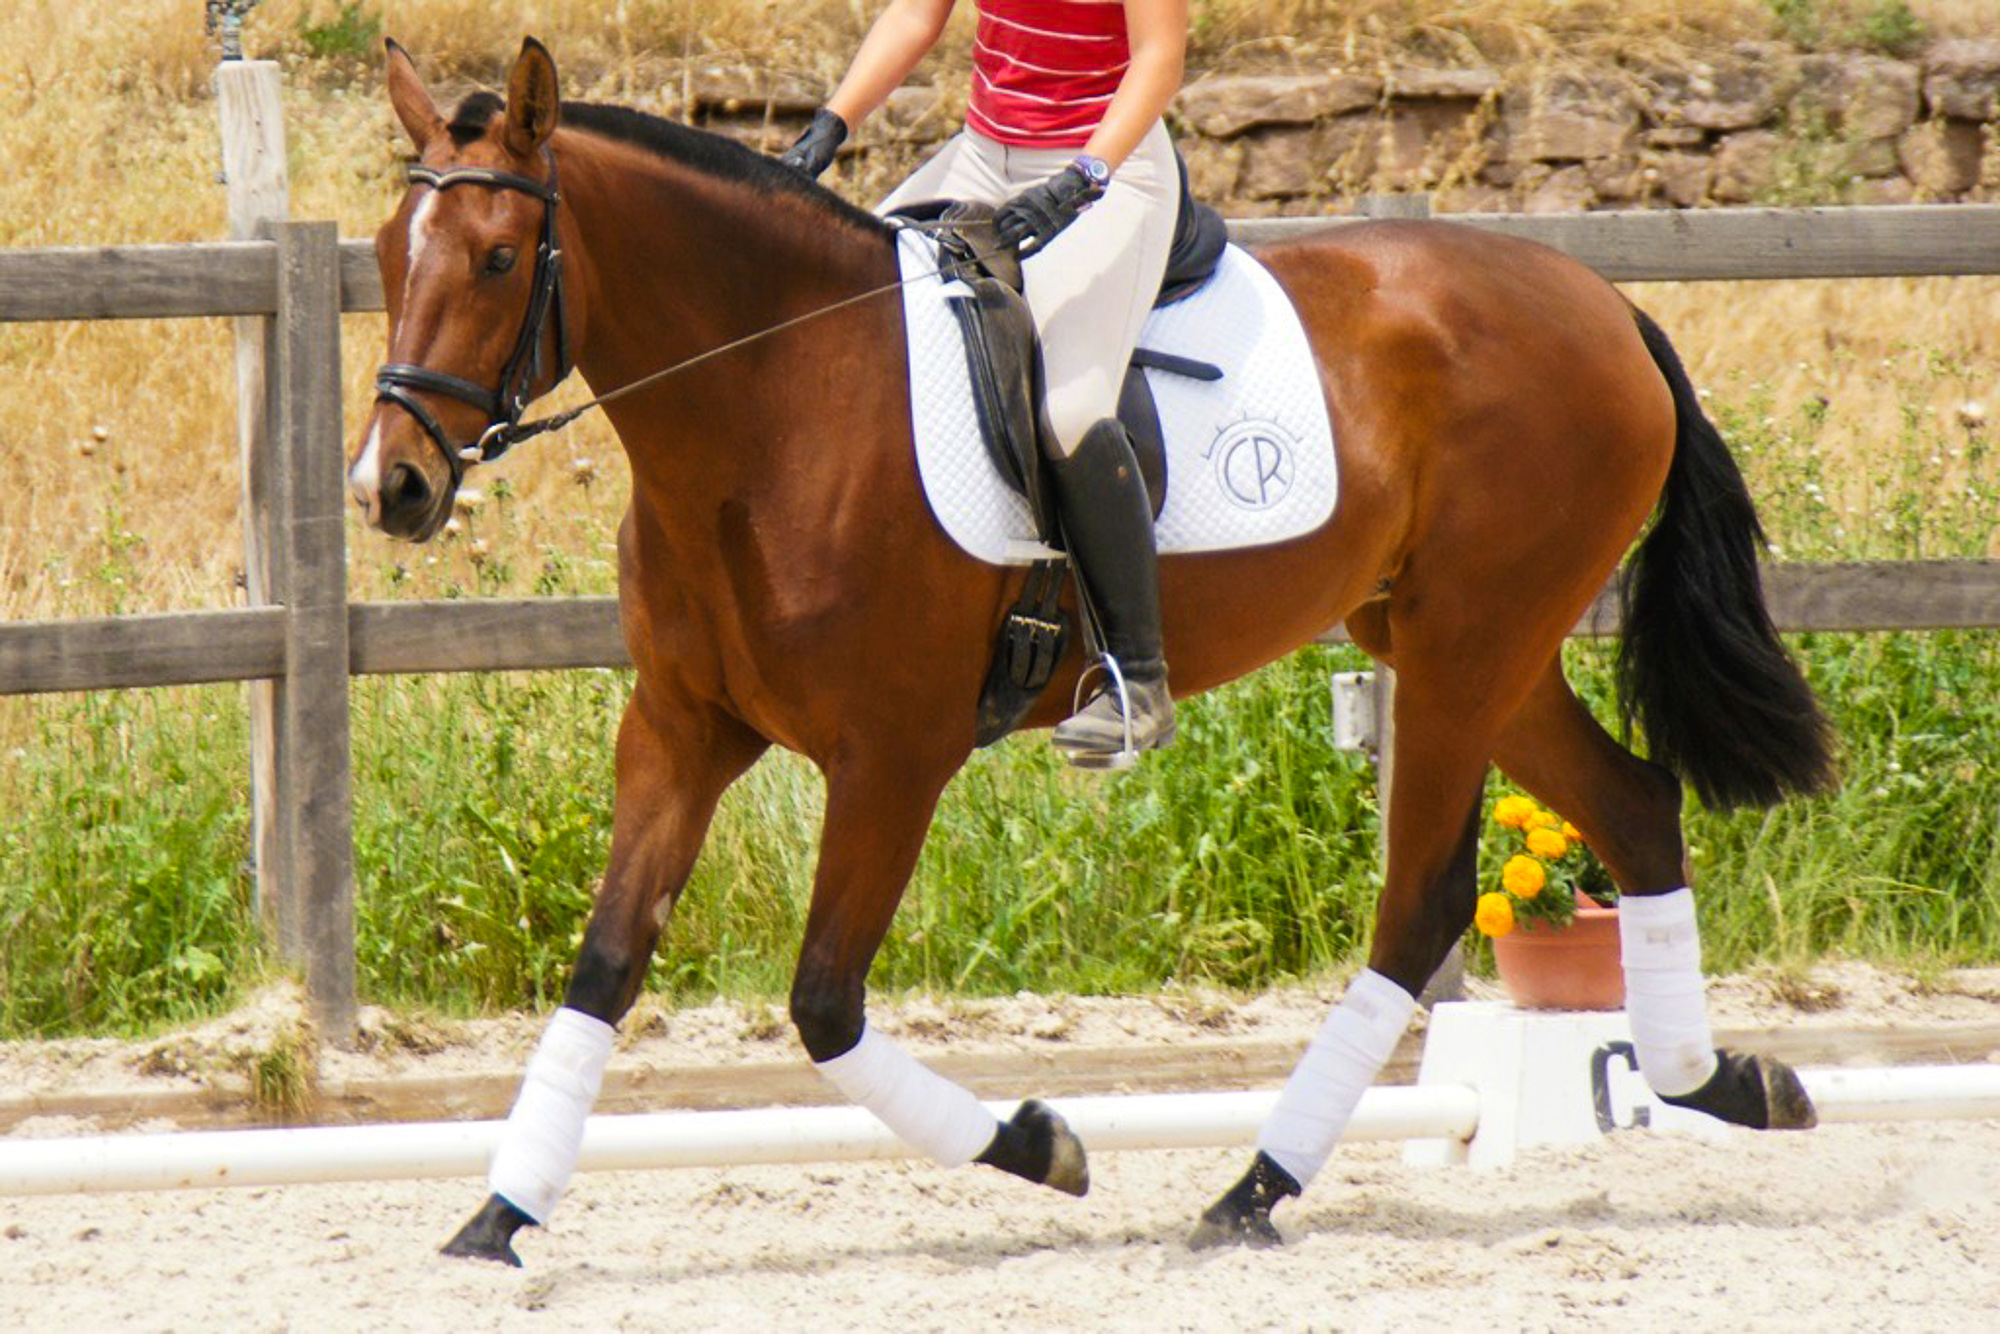 bay-PRE-andalusian-brood-mare-evaluation.jpg